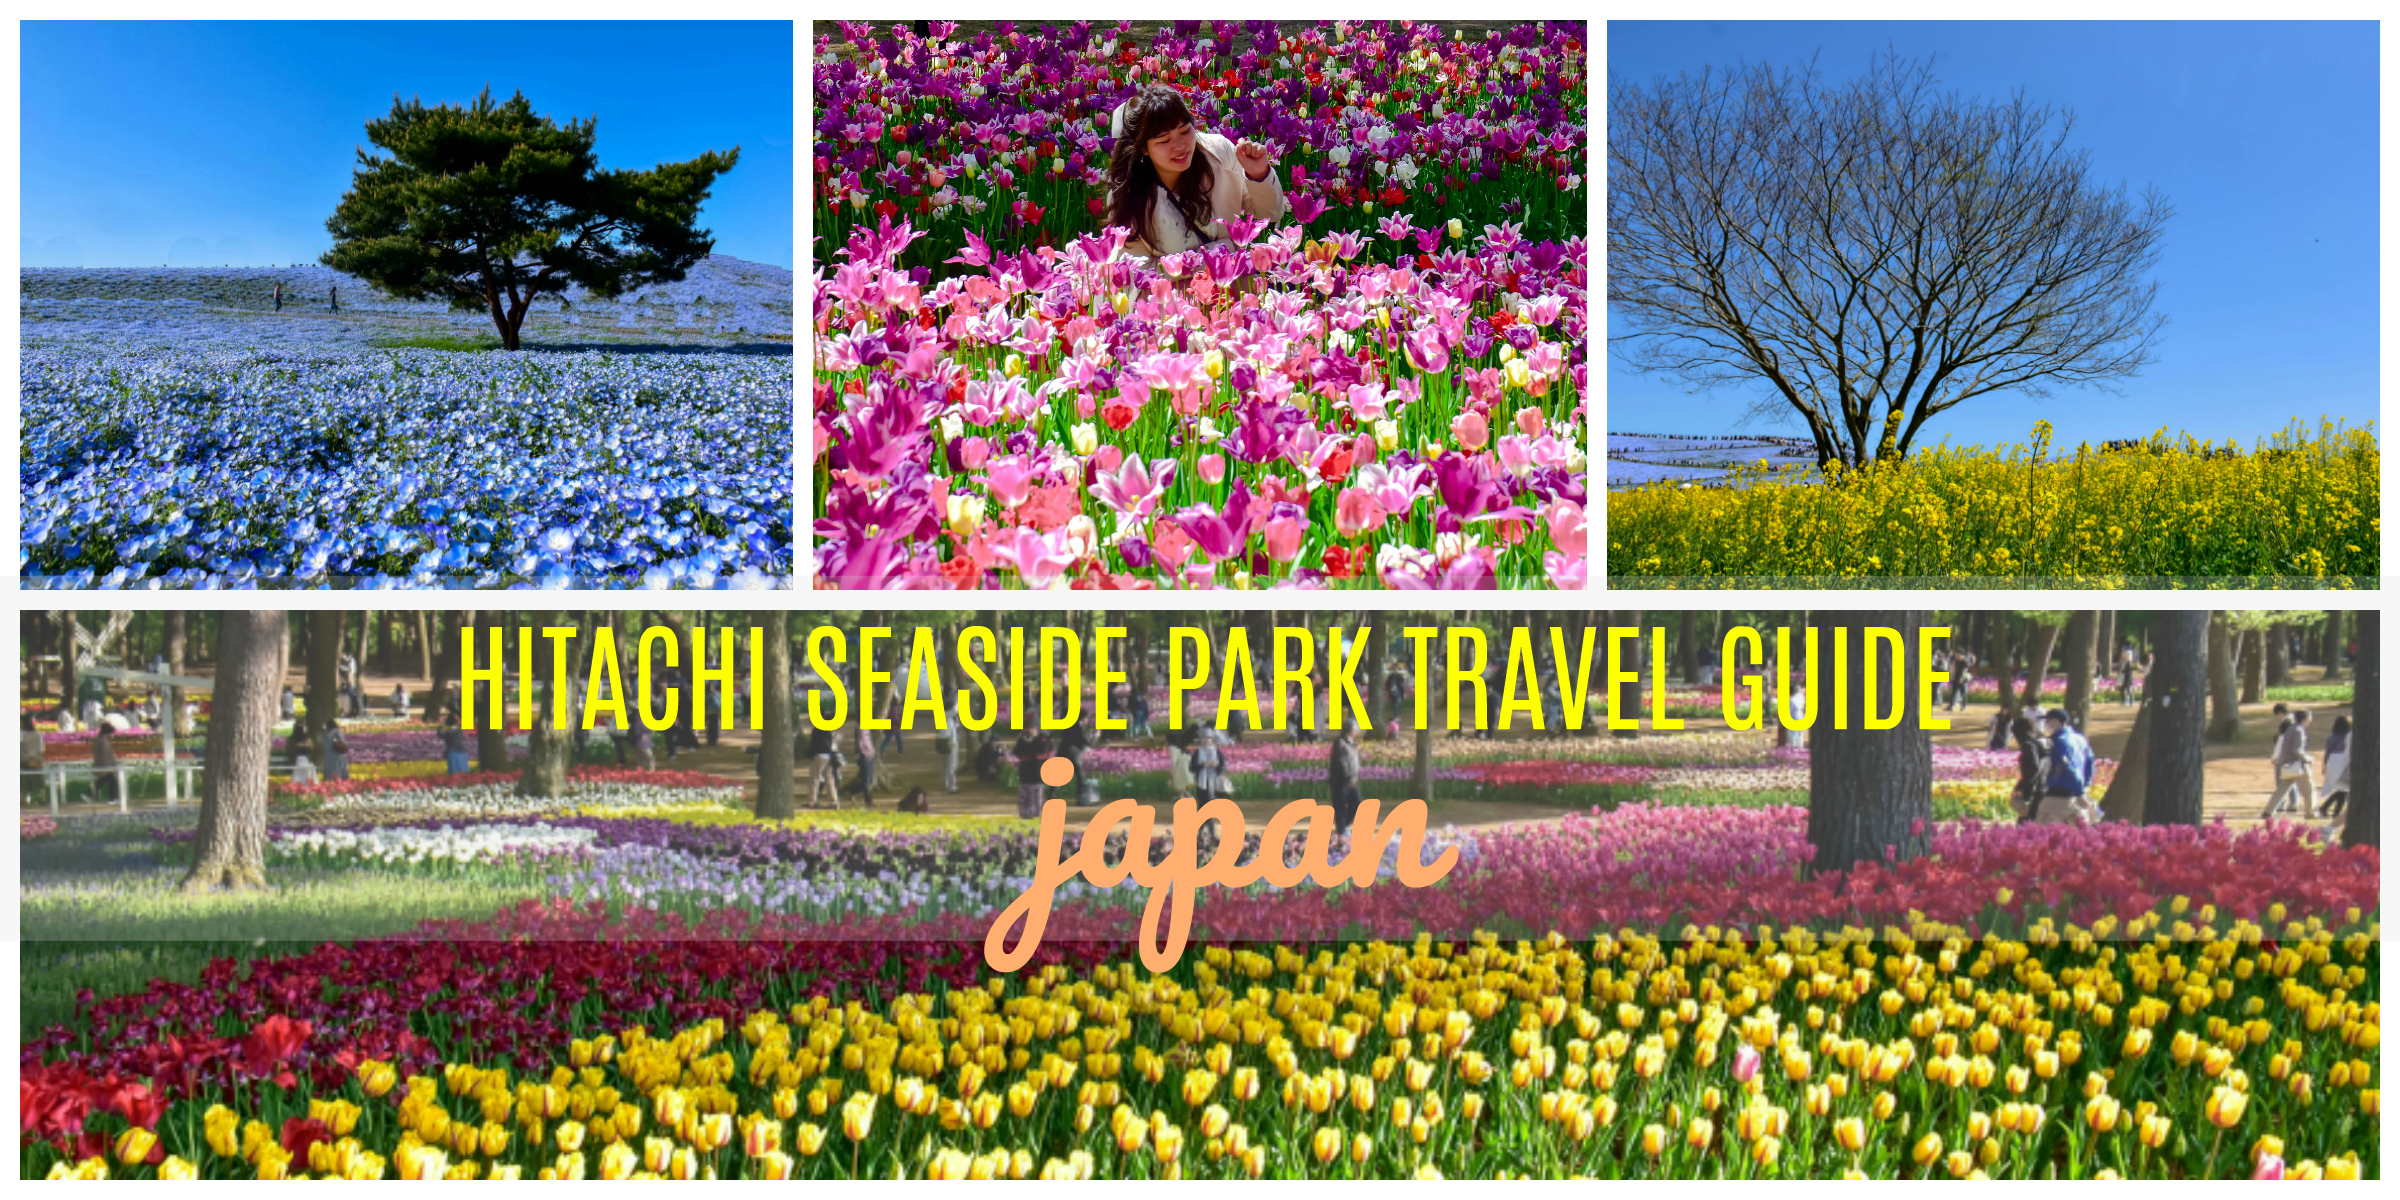 HITACHI SEASIDE PARK FROM TOKYO